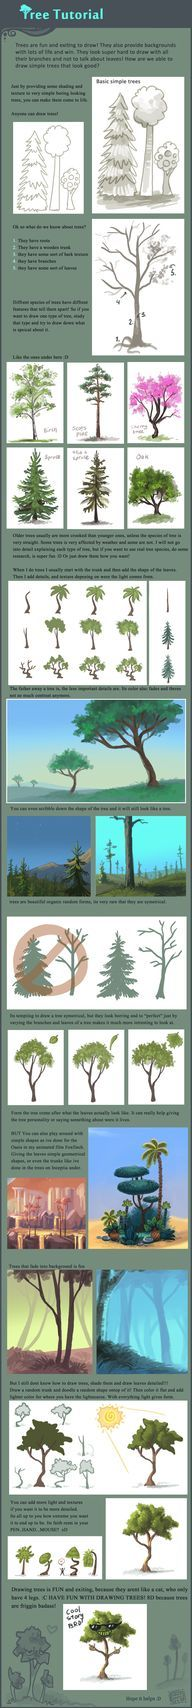 All kinds of trees...